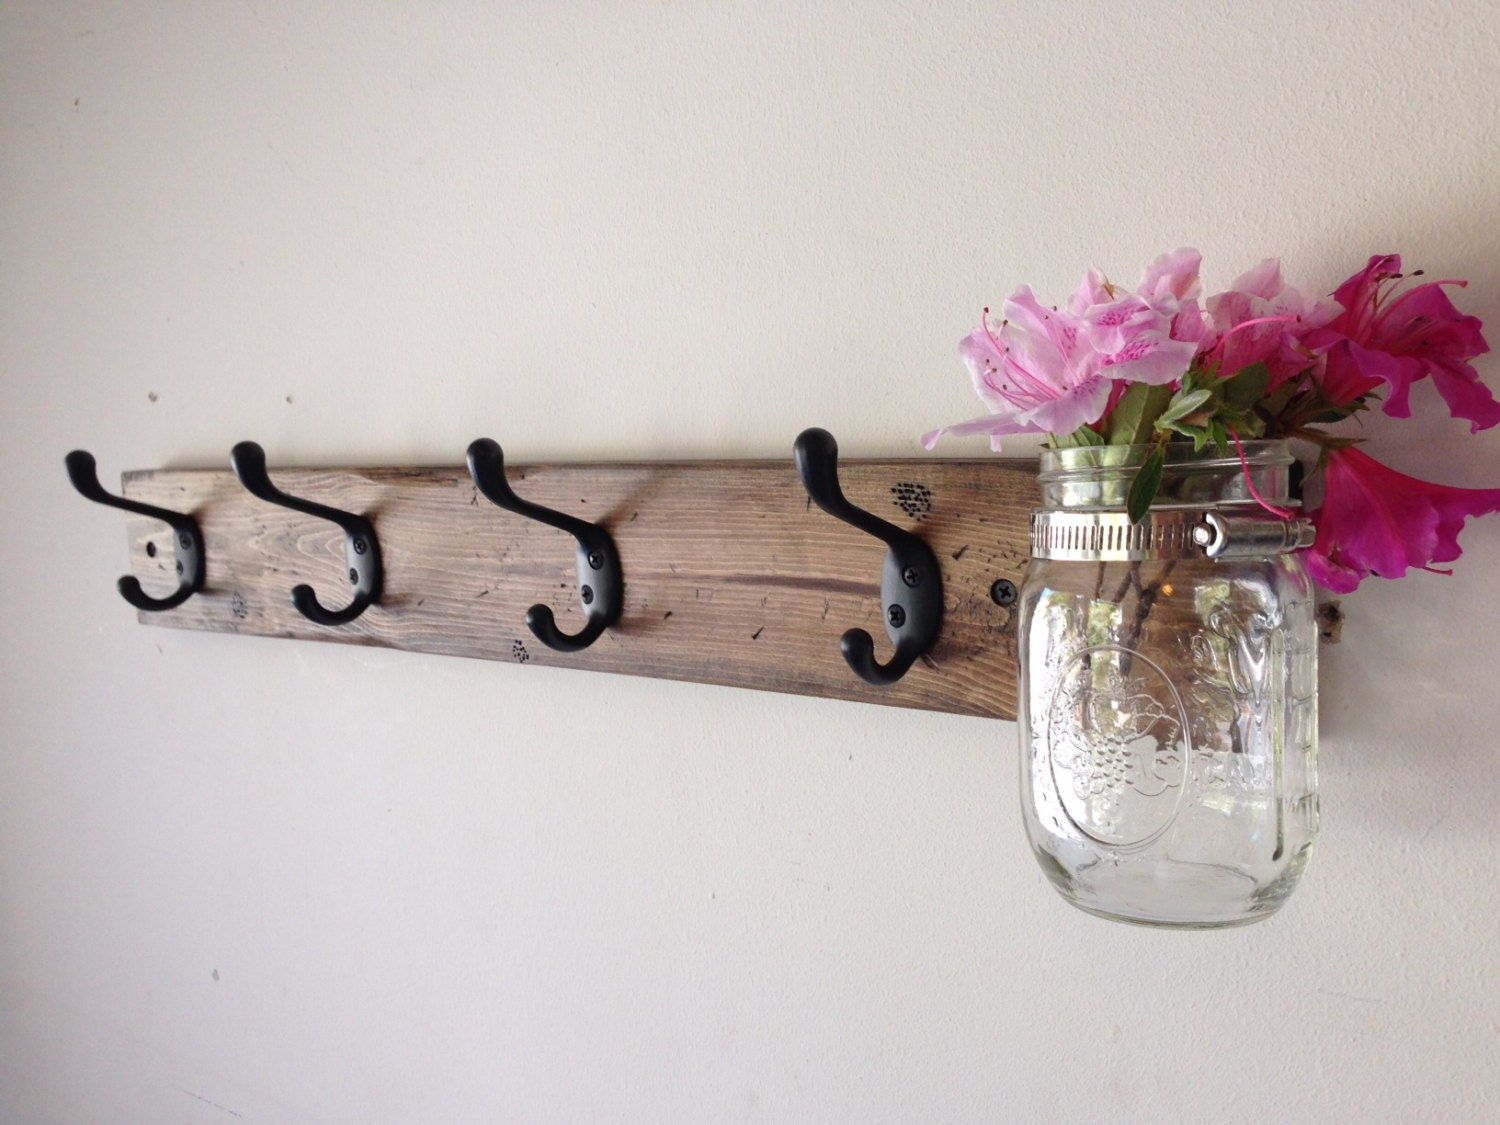 Rustic Wood Wall Coat Rack With Mason Jar Entryway Storage